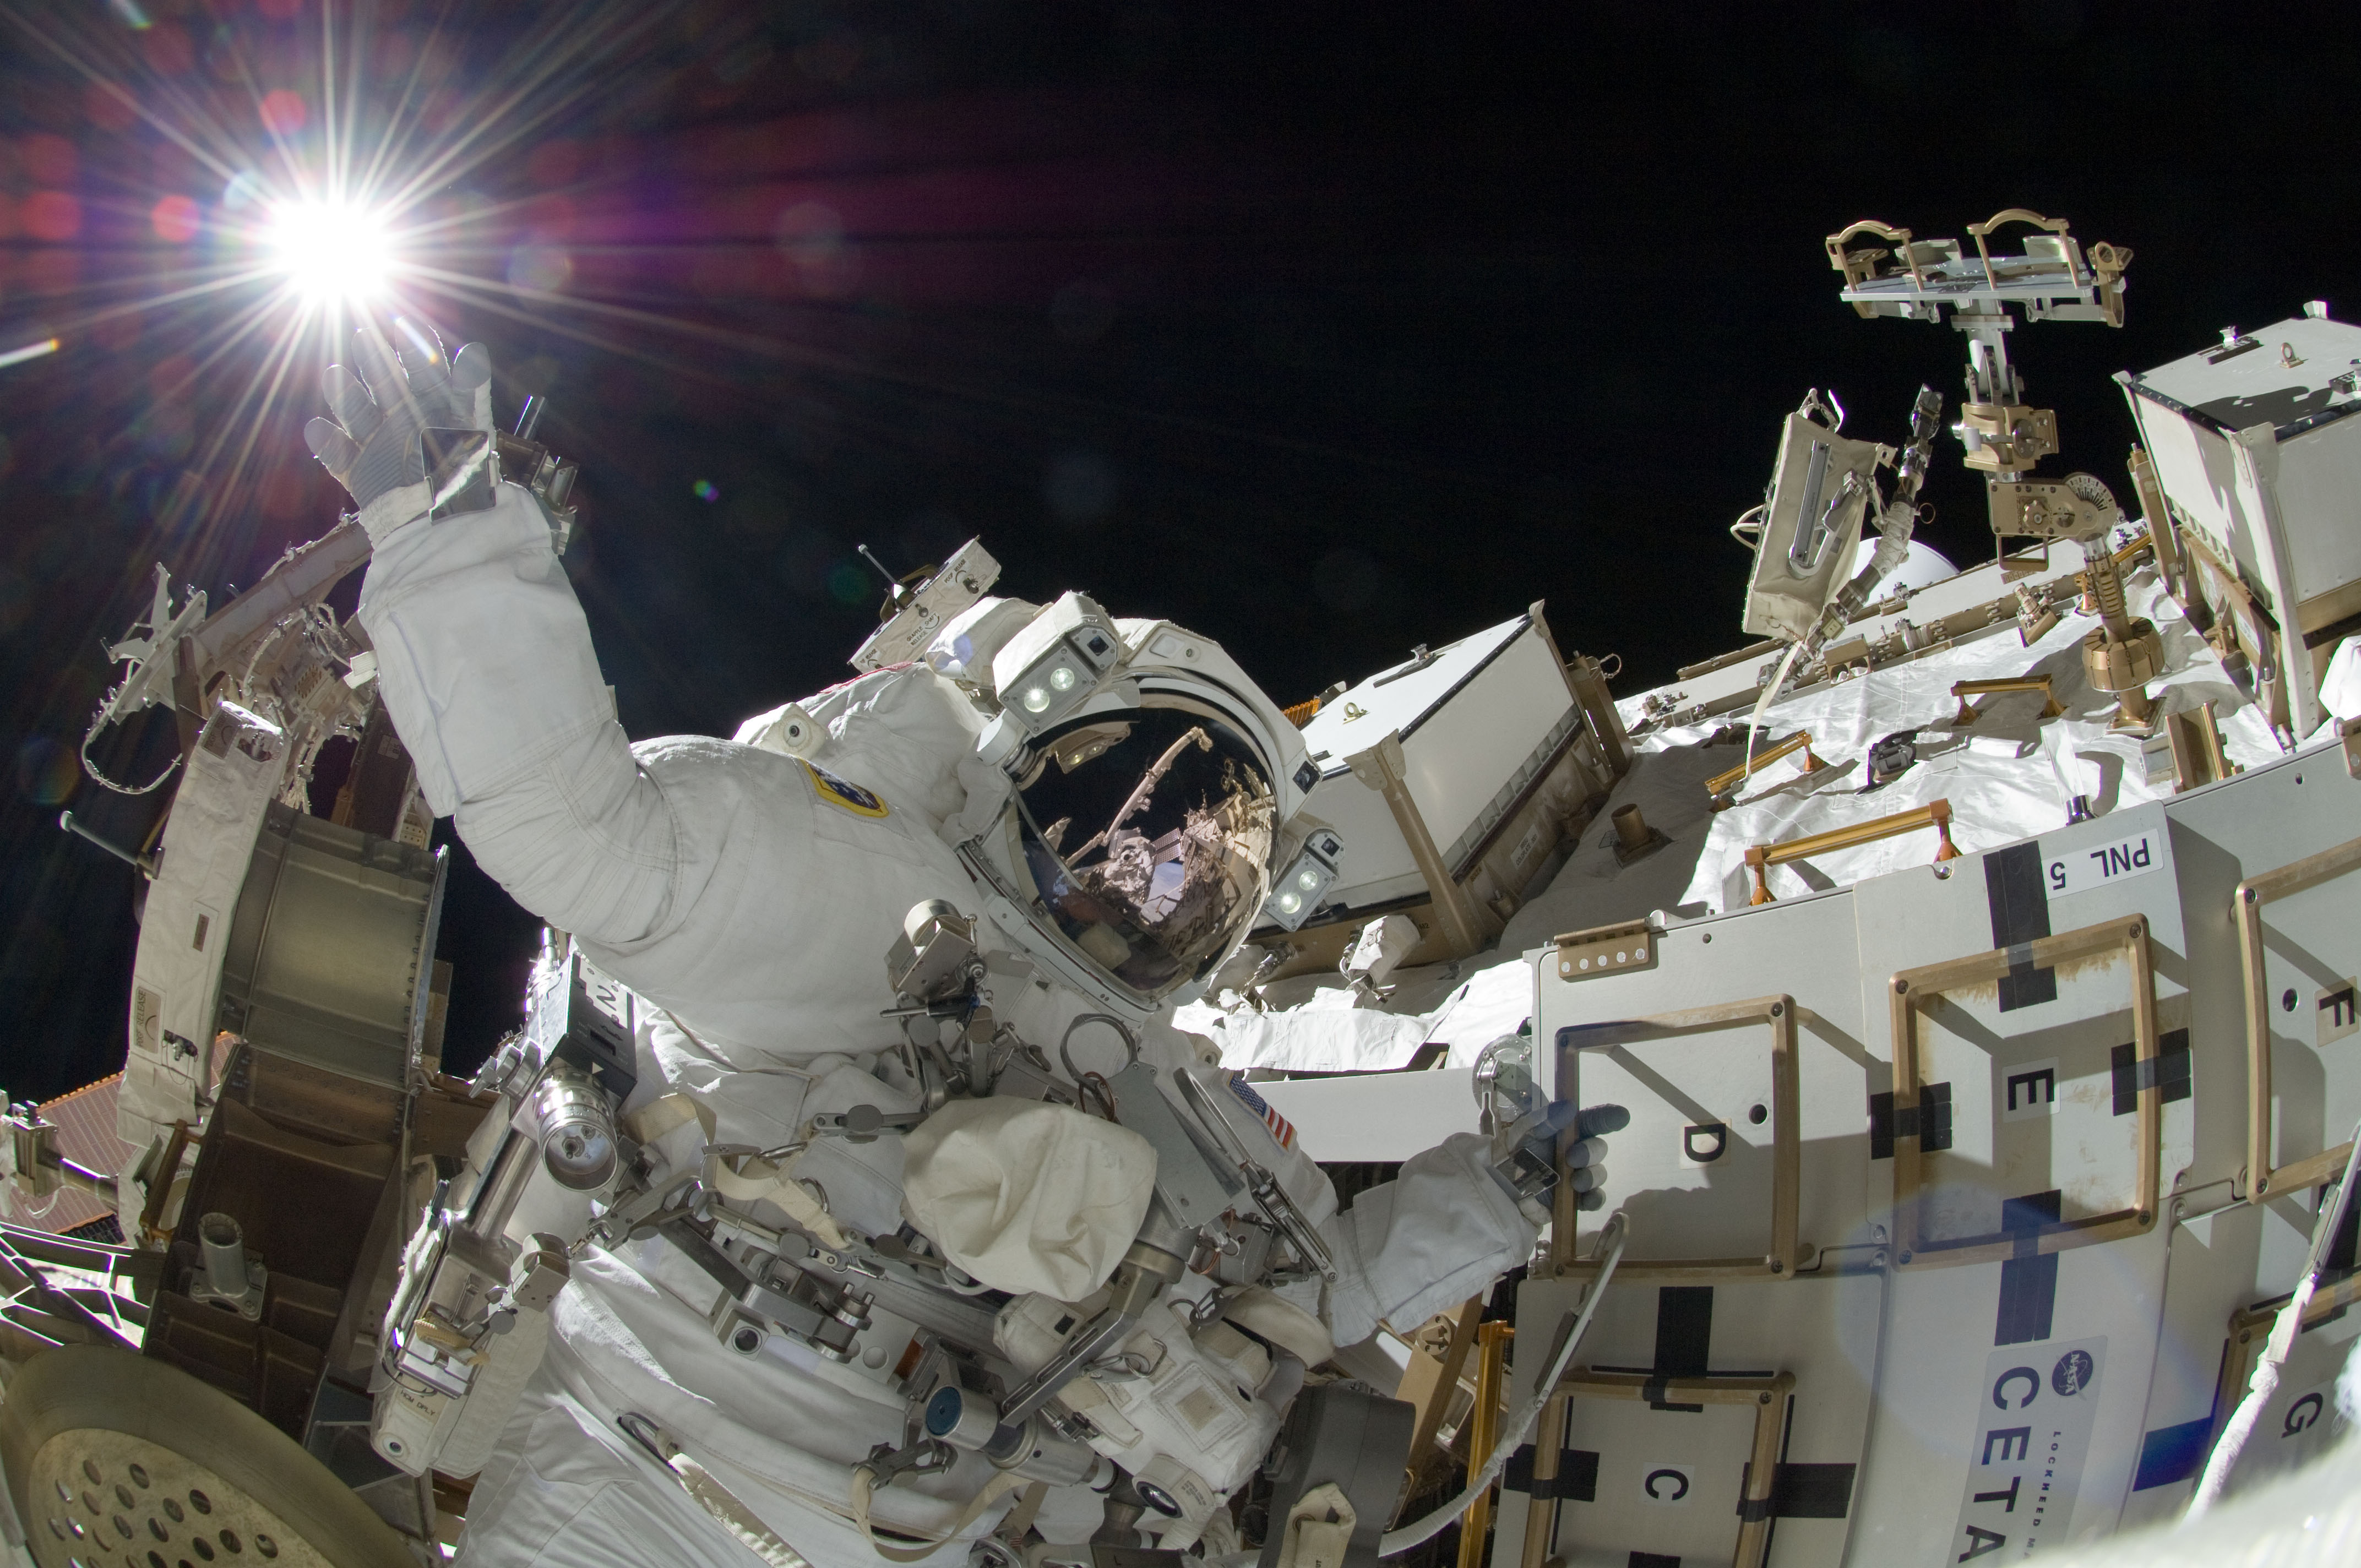 NASA Astronaut Sunita Williams appears to touch the bright sun during a third session of extravehicular activity. Williams and Japan Aerospace Exploration Agency Astronaut Aki Hoshide (visible in the reflections of Williams' helmet visor) completed installation of a main bus switching unit. Photo Credit: NASA